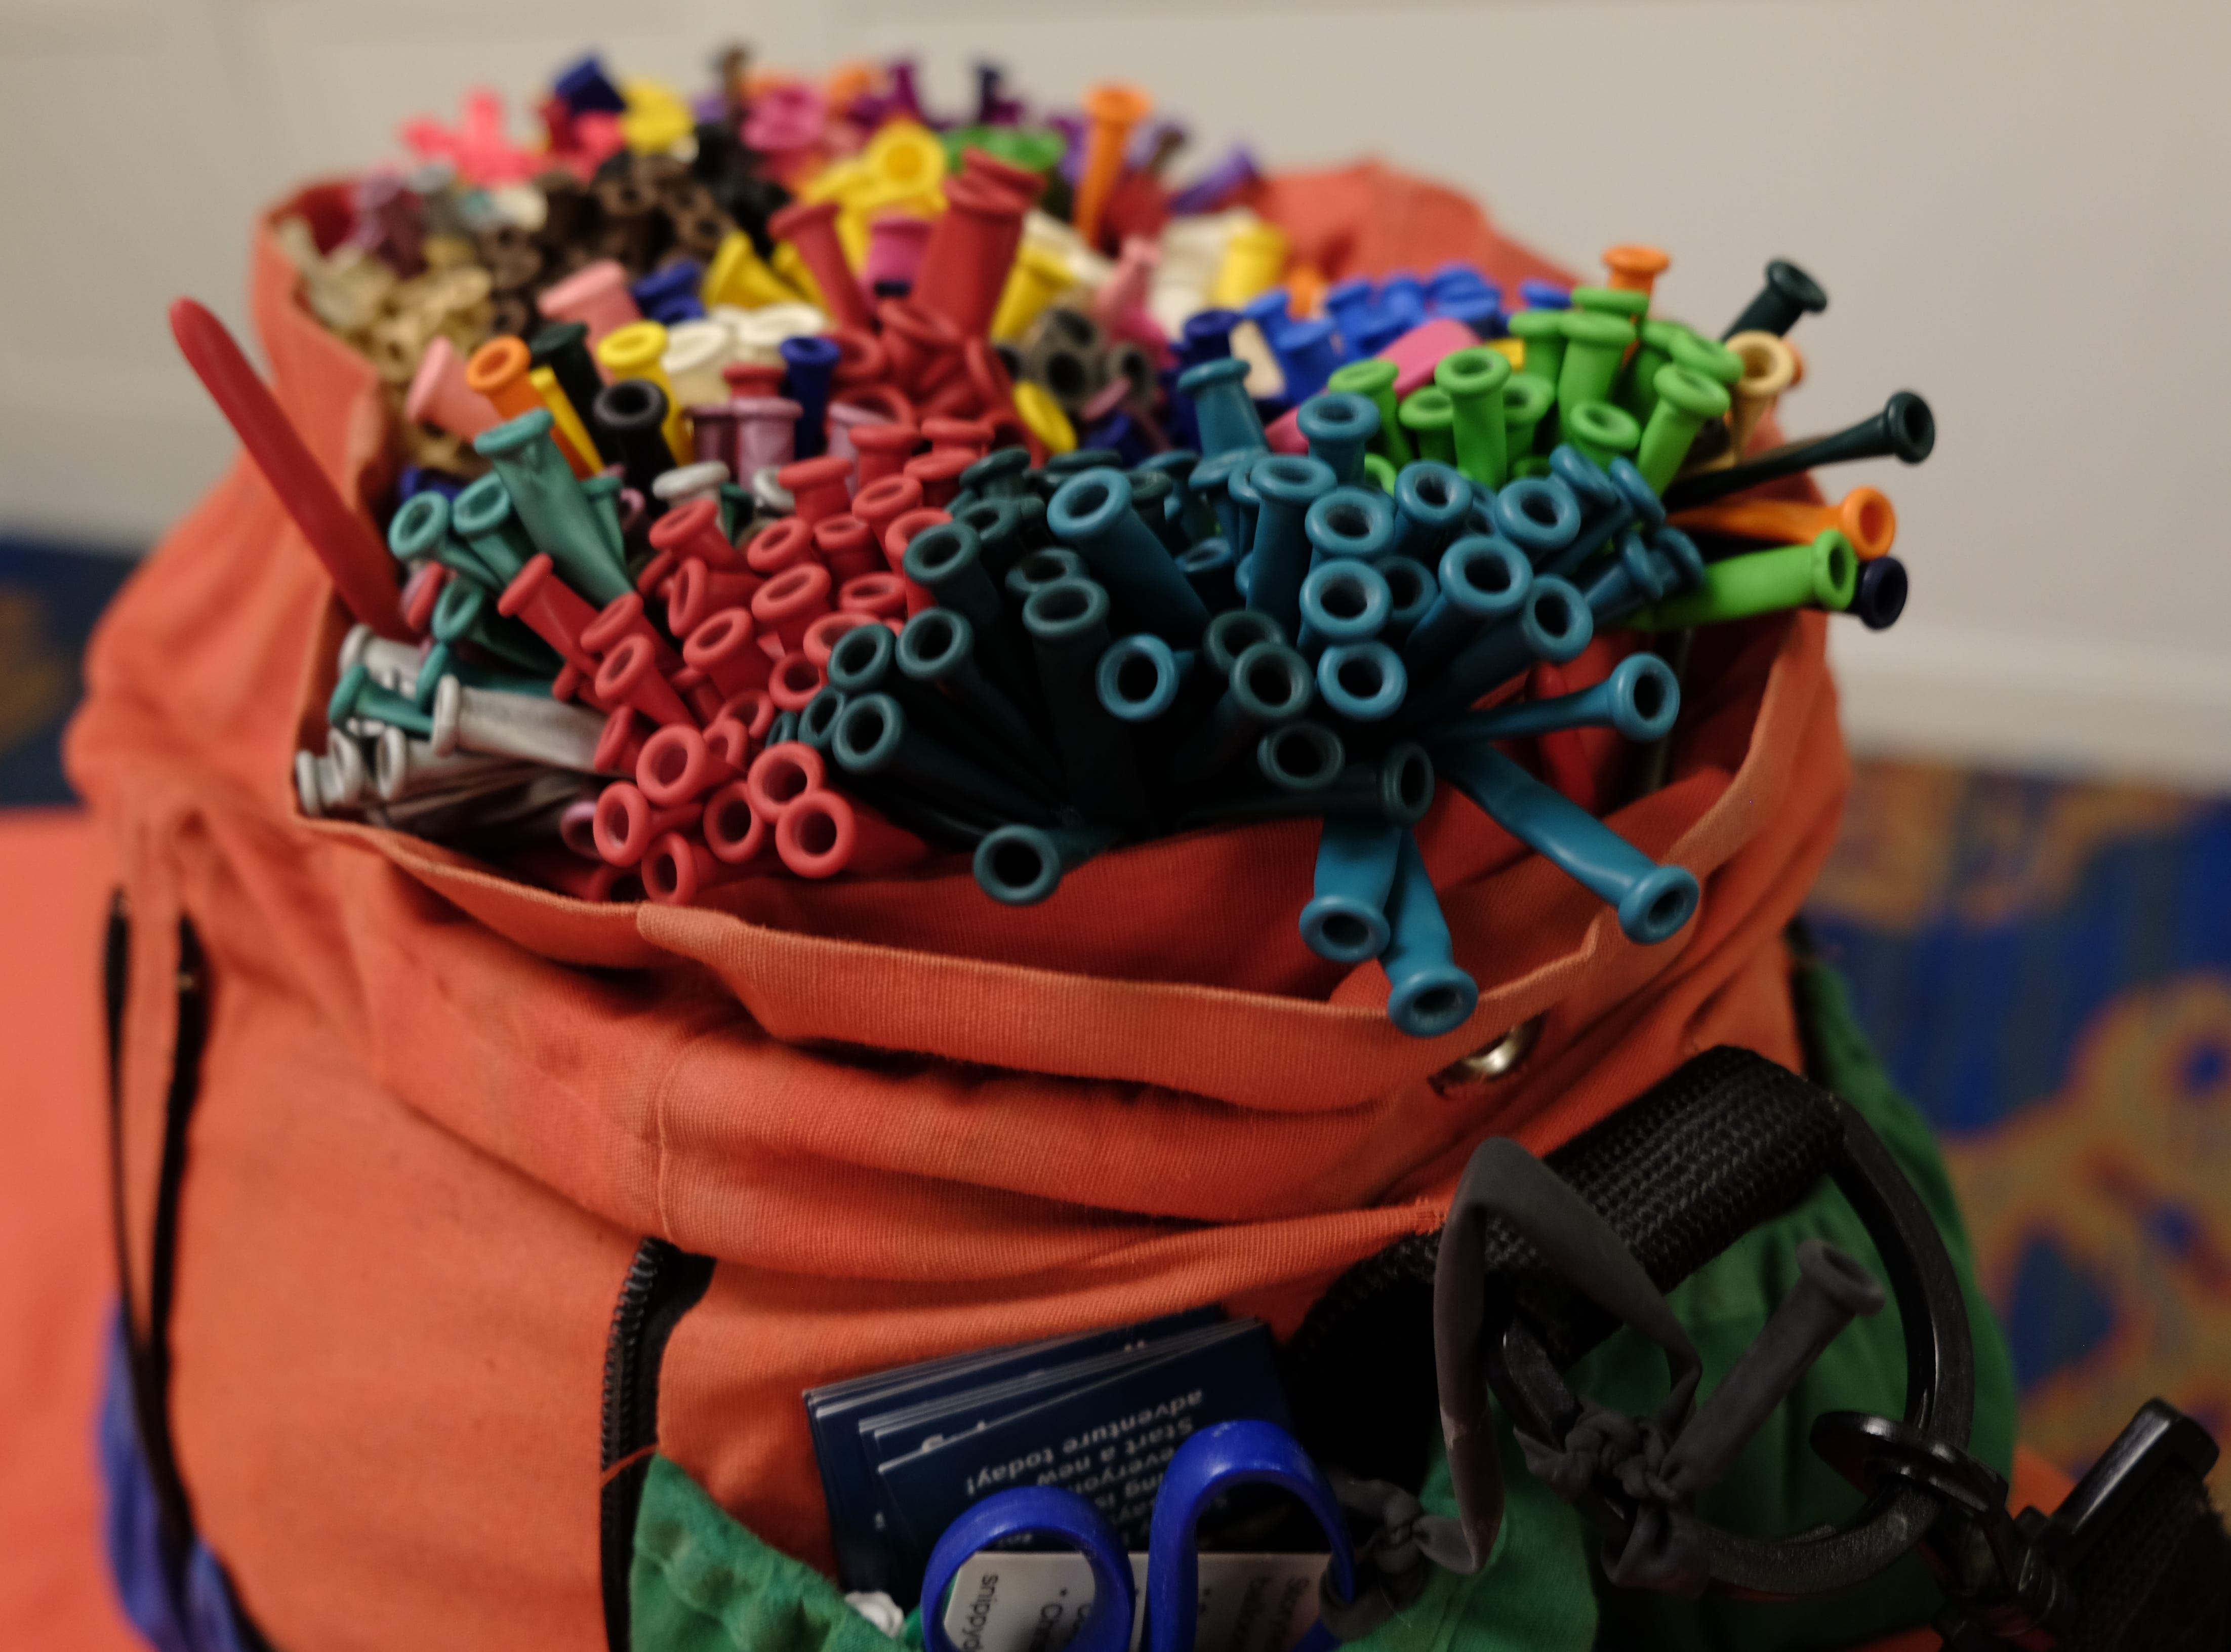 This Twist Em Up bag can hold up to 2,500 balloons.